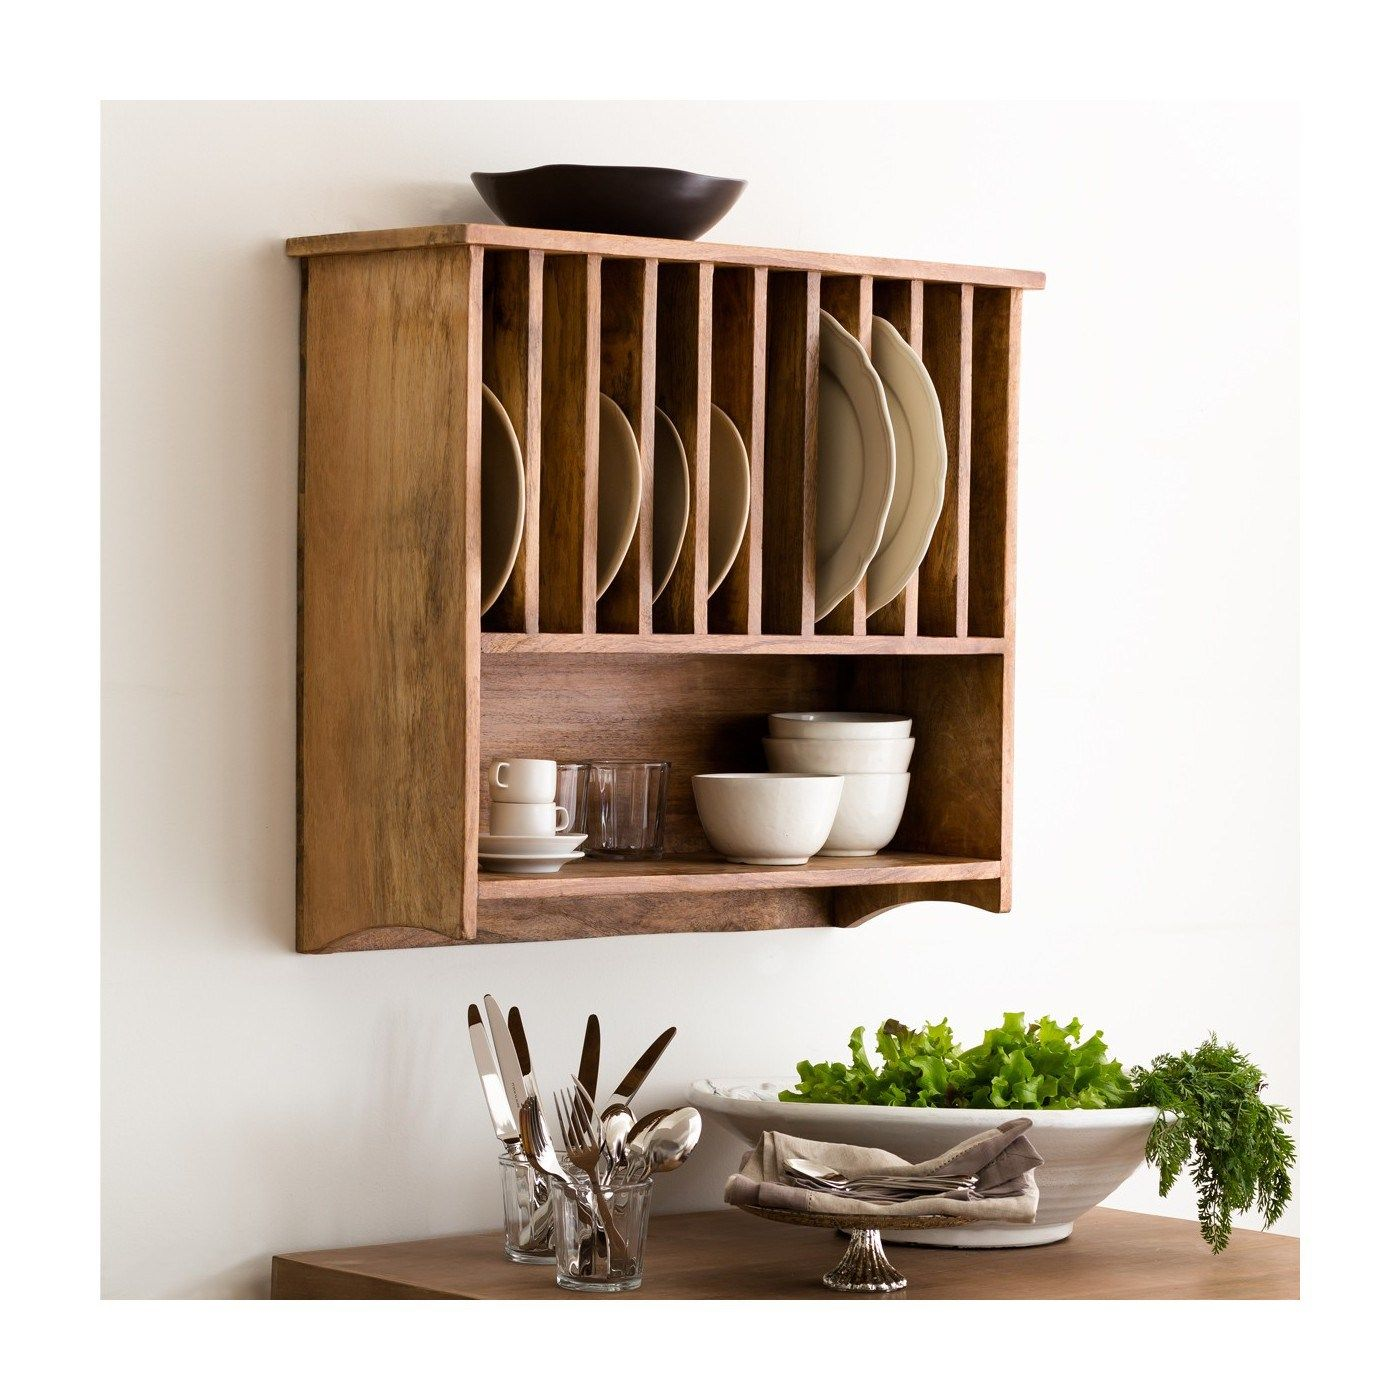 Exquisite Kitchen Decoration With Wooden Plate Rack Wall Mounted  Creative Wall Mounted Cherry WOod Plate Racks In Kitchen Decoration With Wooden Plate ...  sc 1 st  Pinterest & kitchen desaign simple kitchen wall mounted plate racks with regard ...